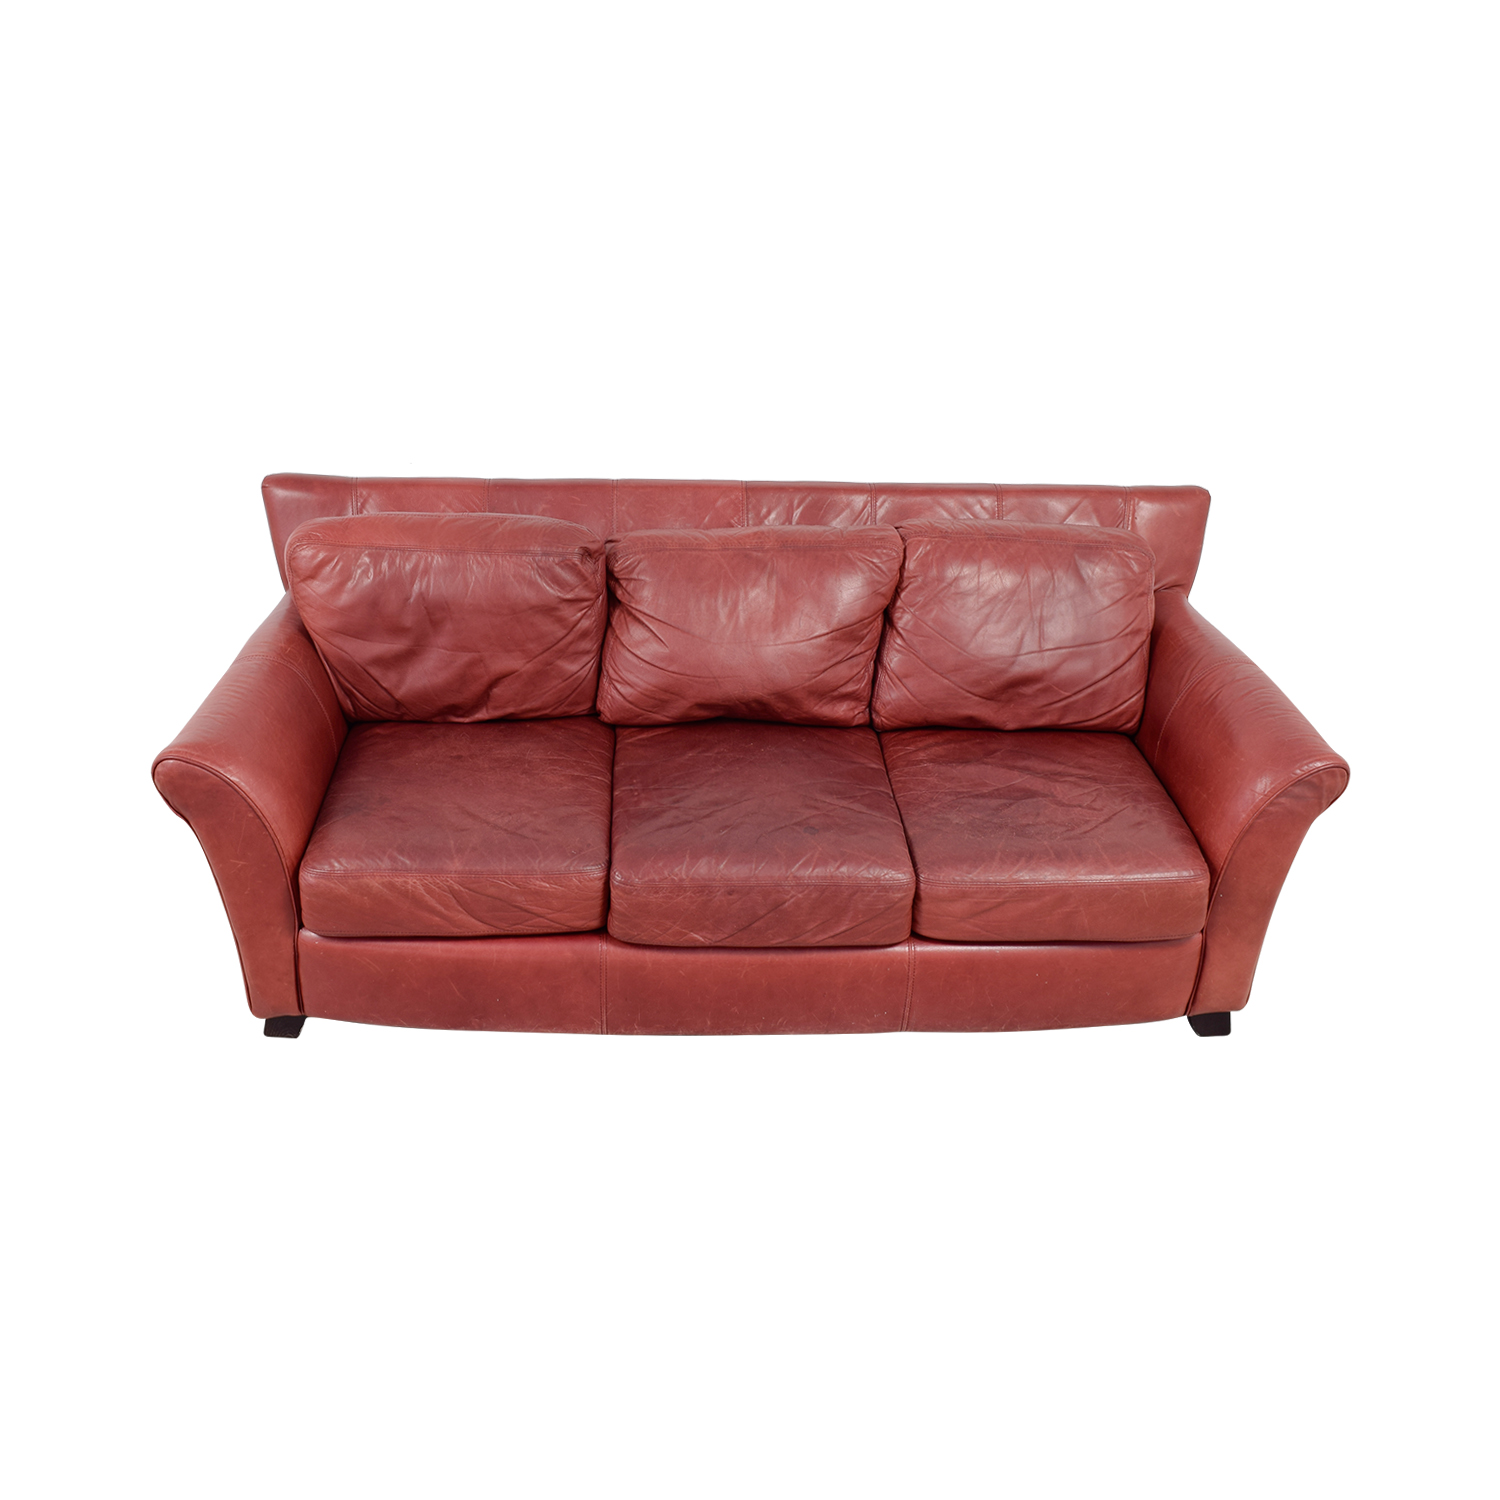 Palliser Palliser Red Leather Three-Cushion Sofa dimensions